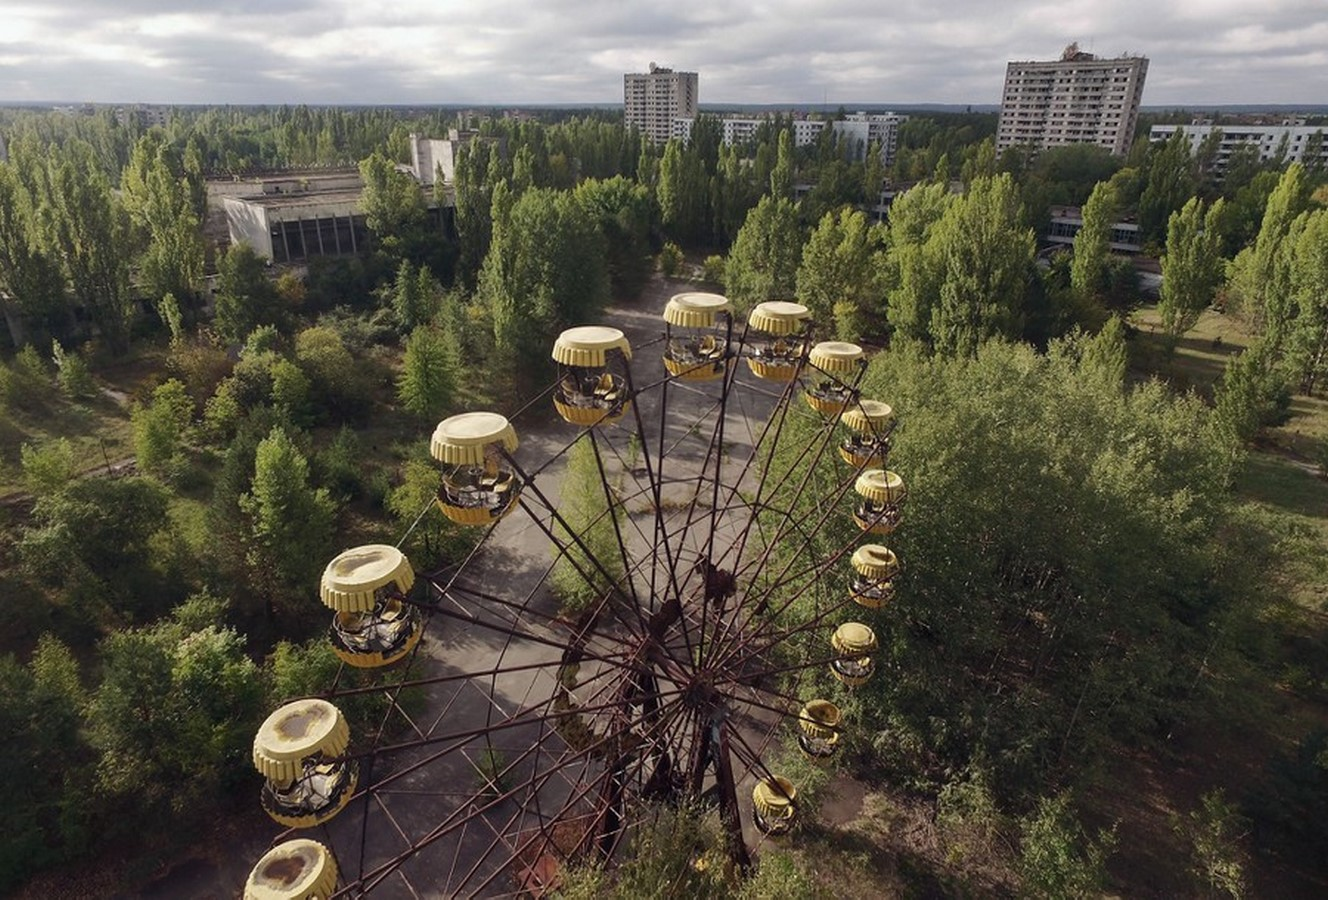 Chernobyl: What remains of the place? - Sheet3